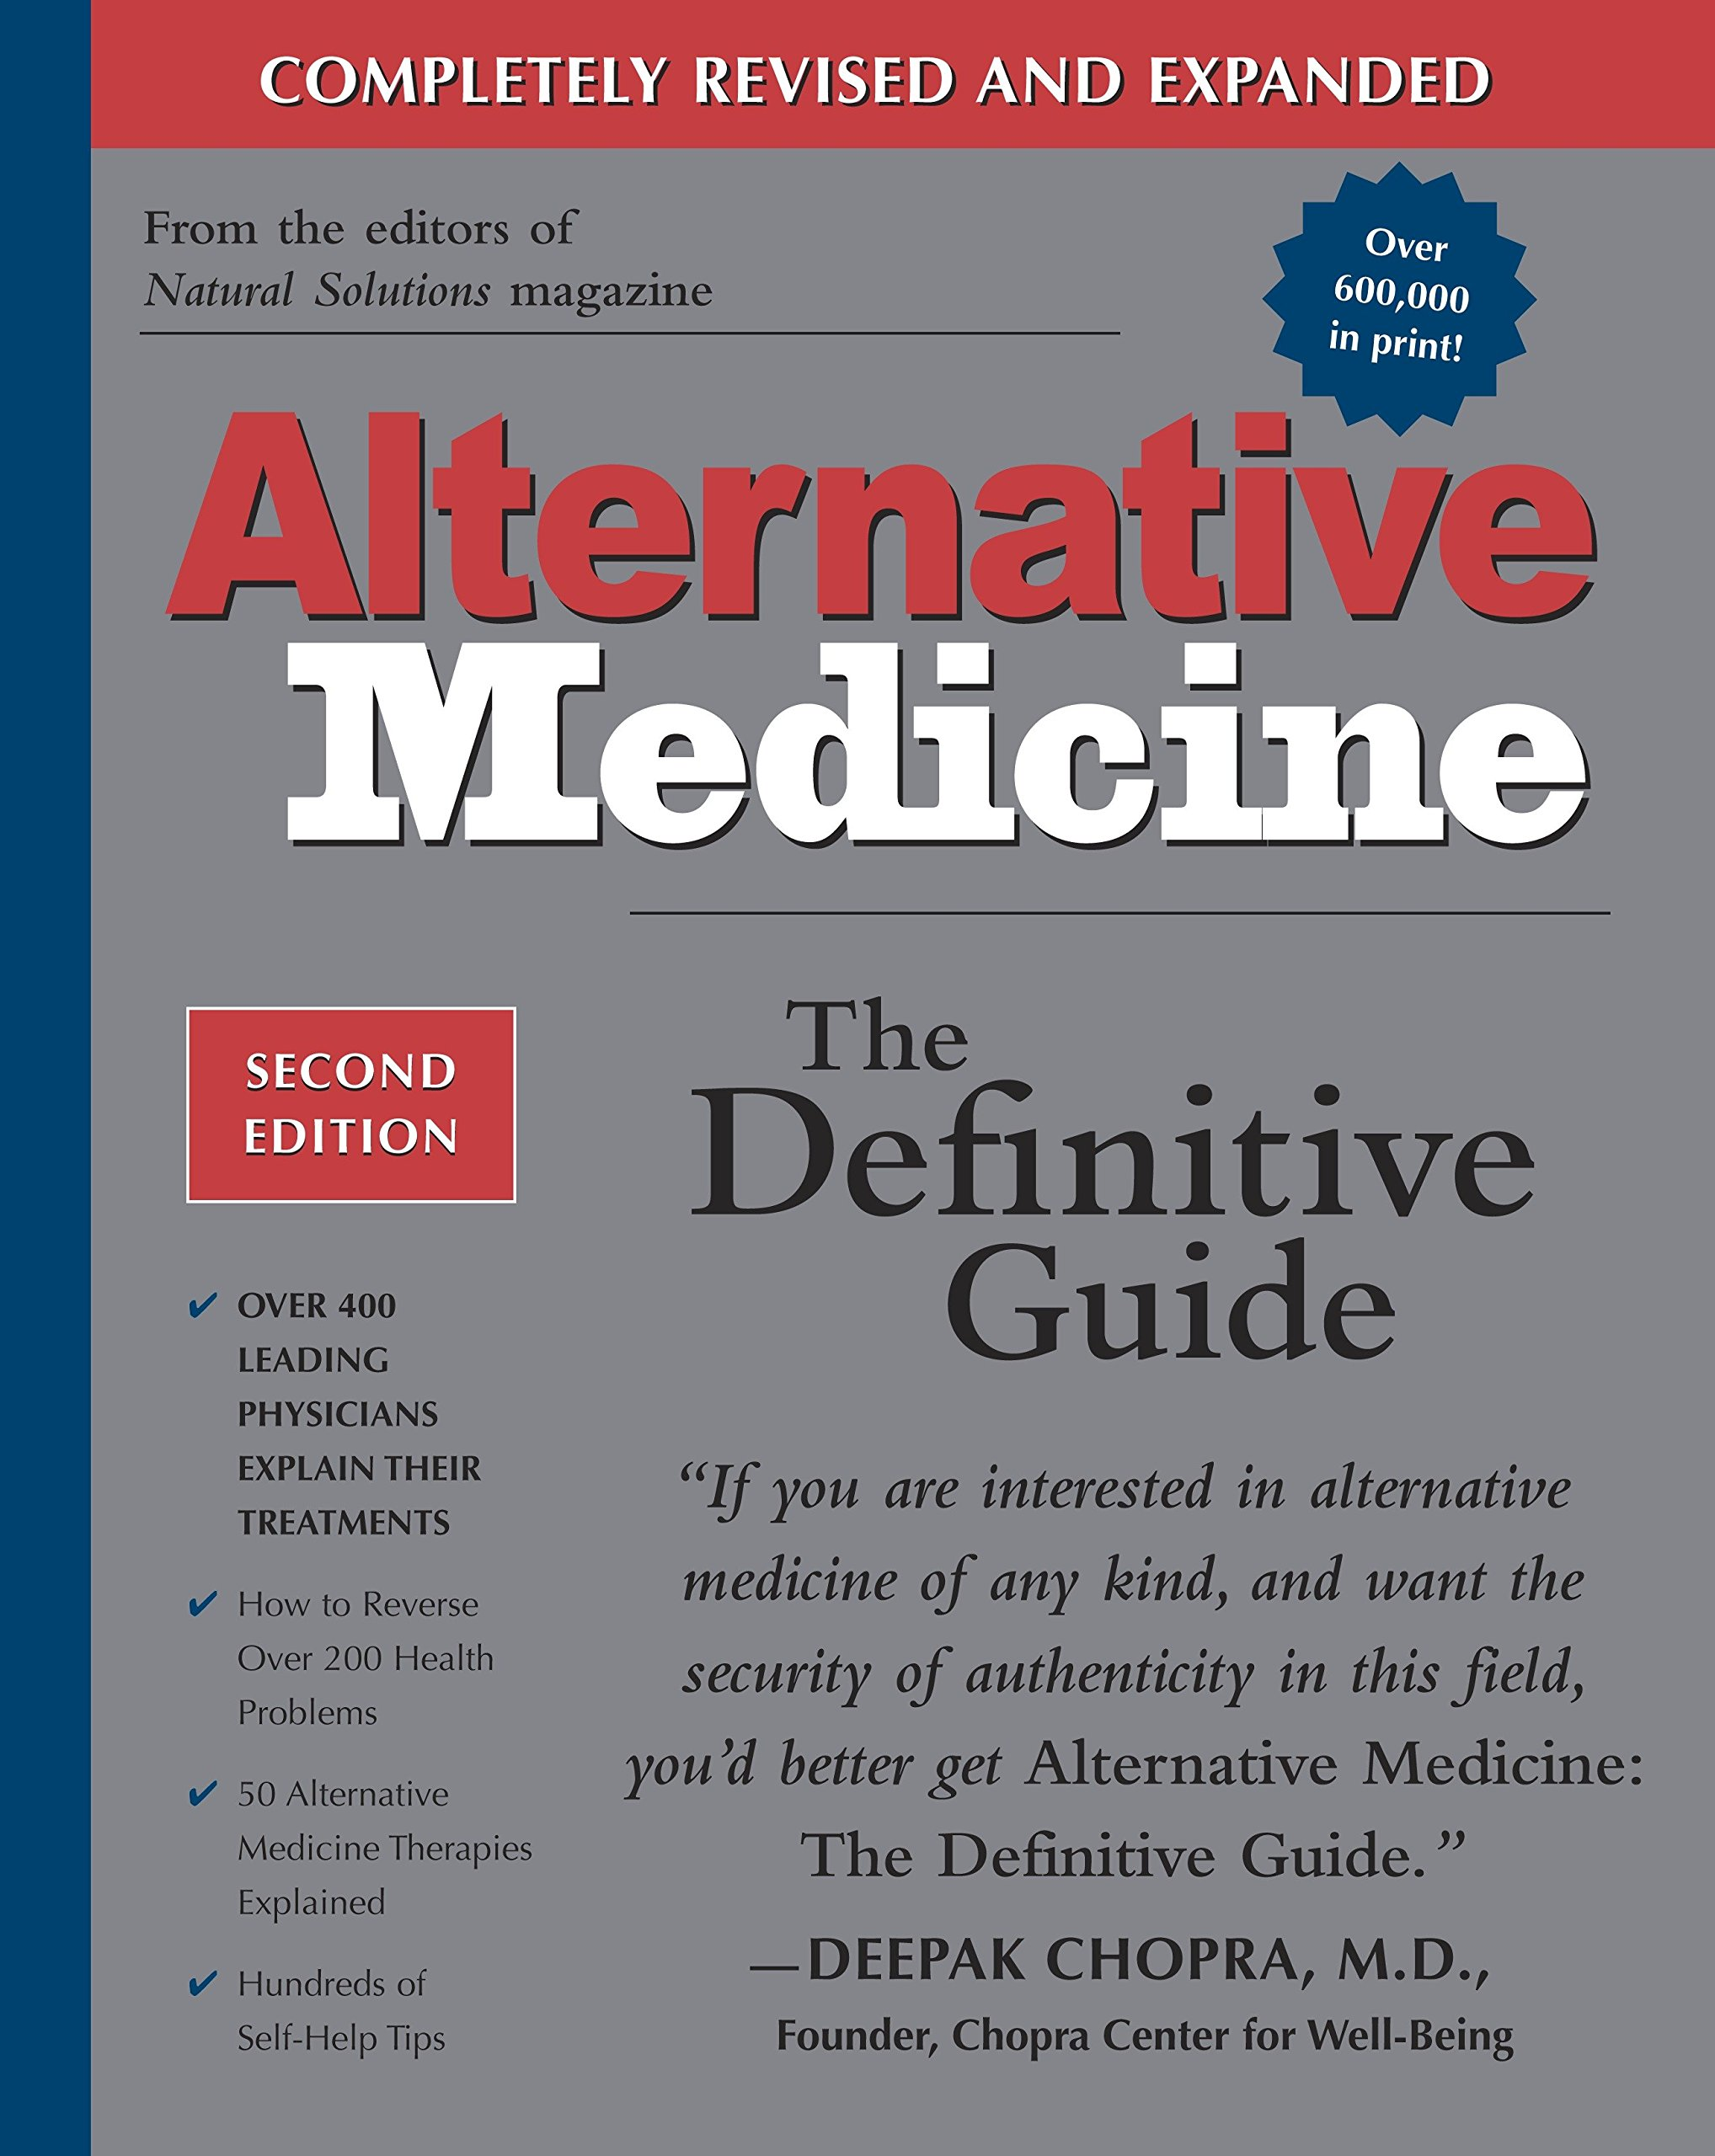 "alternative Medicine: the definitive guide - by John W. AndersonThe Definitive Guide is known as the Bible of alternative medicine. You may very well want to use a dictionary stand for this hefty tome; it weighs in at more than 1,000 pages. Nearly 400 doctors (M.D.s, Ph.D.s, naturopaths, Doctors of Oriental Medicine, and osteopaths) contribute their cutting-edge knowledge, and the list of names is impressive. You'll find words of advice from Joseph Pizzorno, the president of Bastyr University in Seattle, Washington; C. Norman Shealy, the cofounder of the American Holistic Medical Association; Nobel laureate Linus Pauling; Deepak Chopra; and Joan Borysenko, author and director of the Mind-Body Health Sciences in Boulder, Colorado.After an intriguing, optimistic look at ""The Future of Medicine,"" the book is divided into two sections. The first profiles 43 alternative therapies–acupuncture, craniosacral therapy, qigong, hyperthermia, and yoga among them–including their development, how they work, proven uses, and controversial or yet-to-be-proven uses, along with contact information for organizations. The second section covers 105 topics such as headaches, mental health, and allergies, along with the alternative therapies that are most likely to help alleviate pain and encourage healing. This guide is easy enough to understand to make it perfect for home reference, while it would also make a fine resource for health care providers interesting in learning more about alternative medicine."